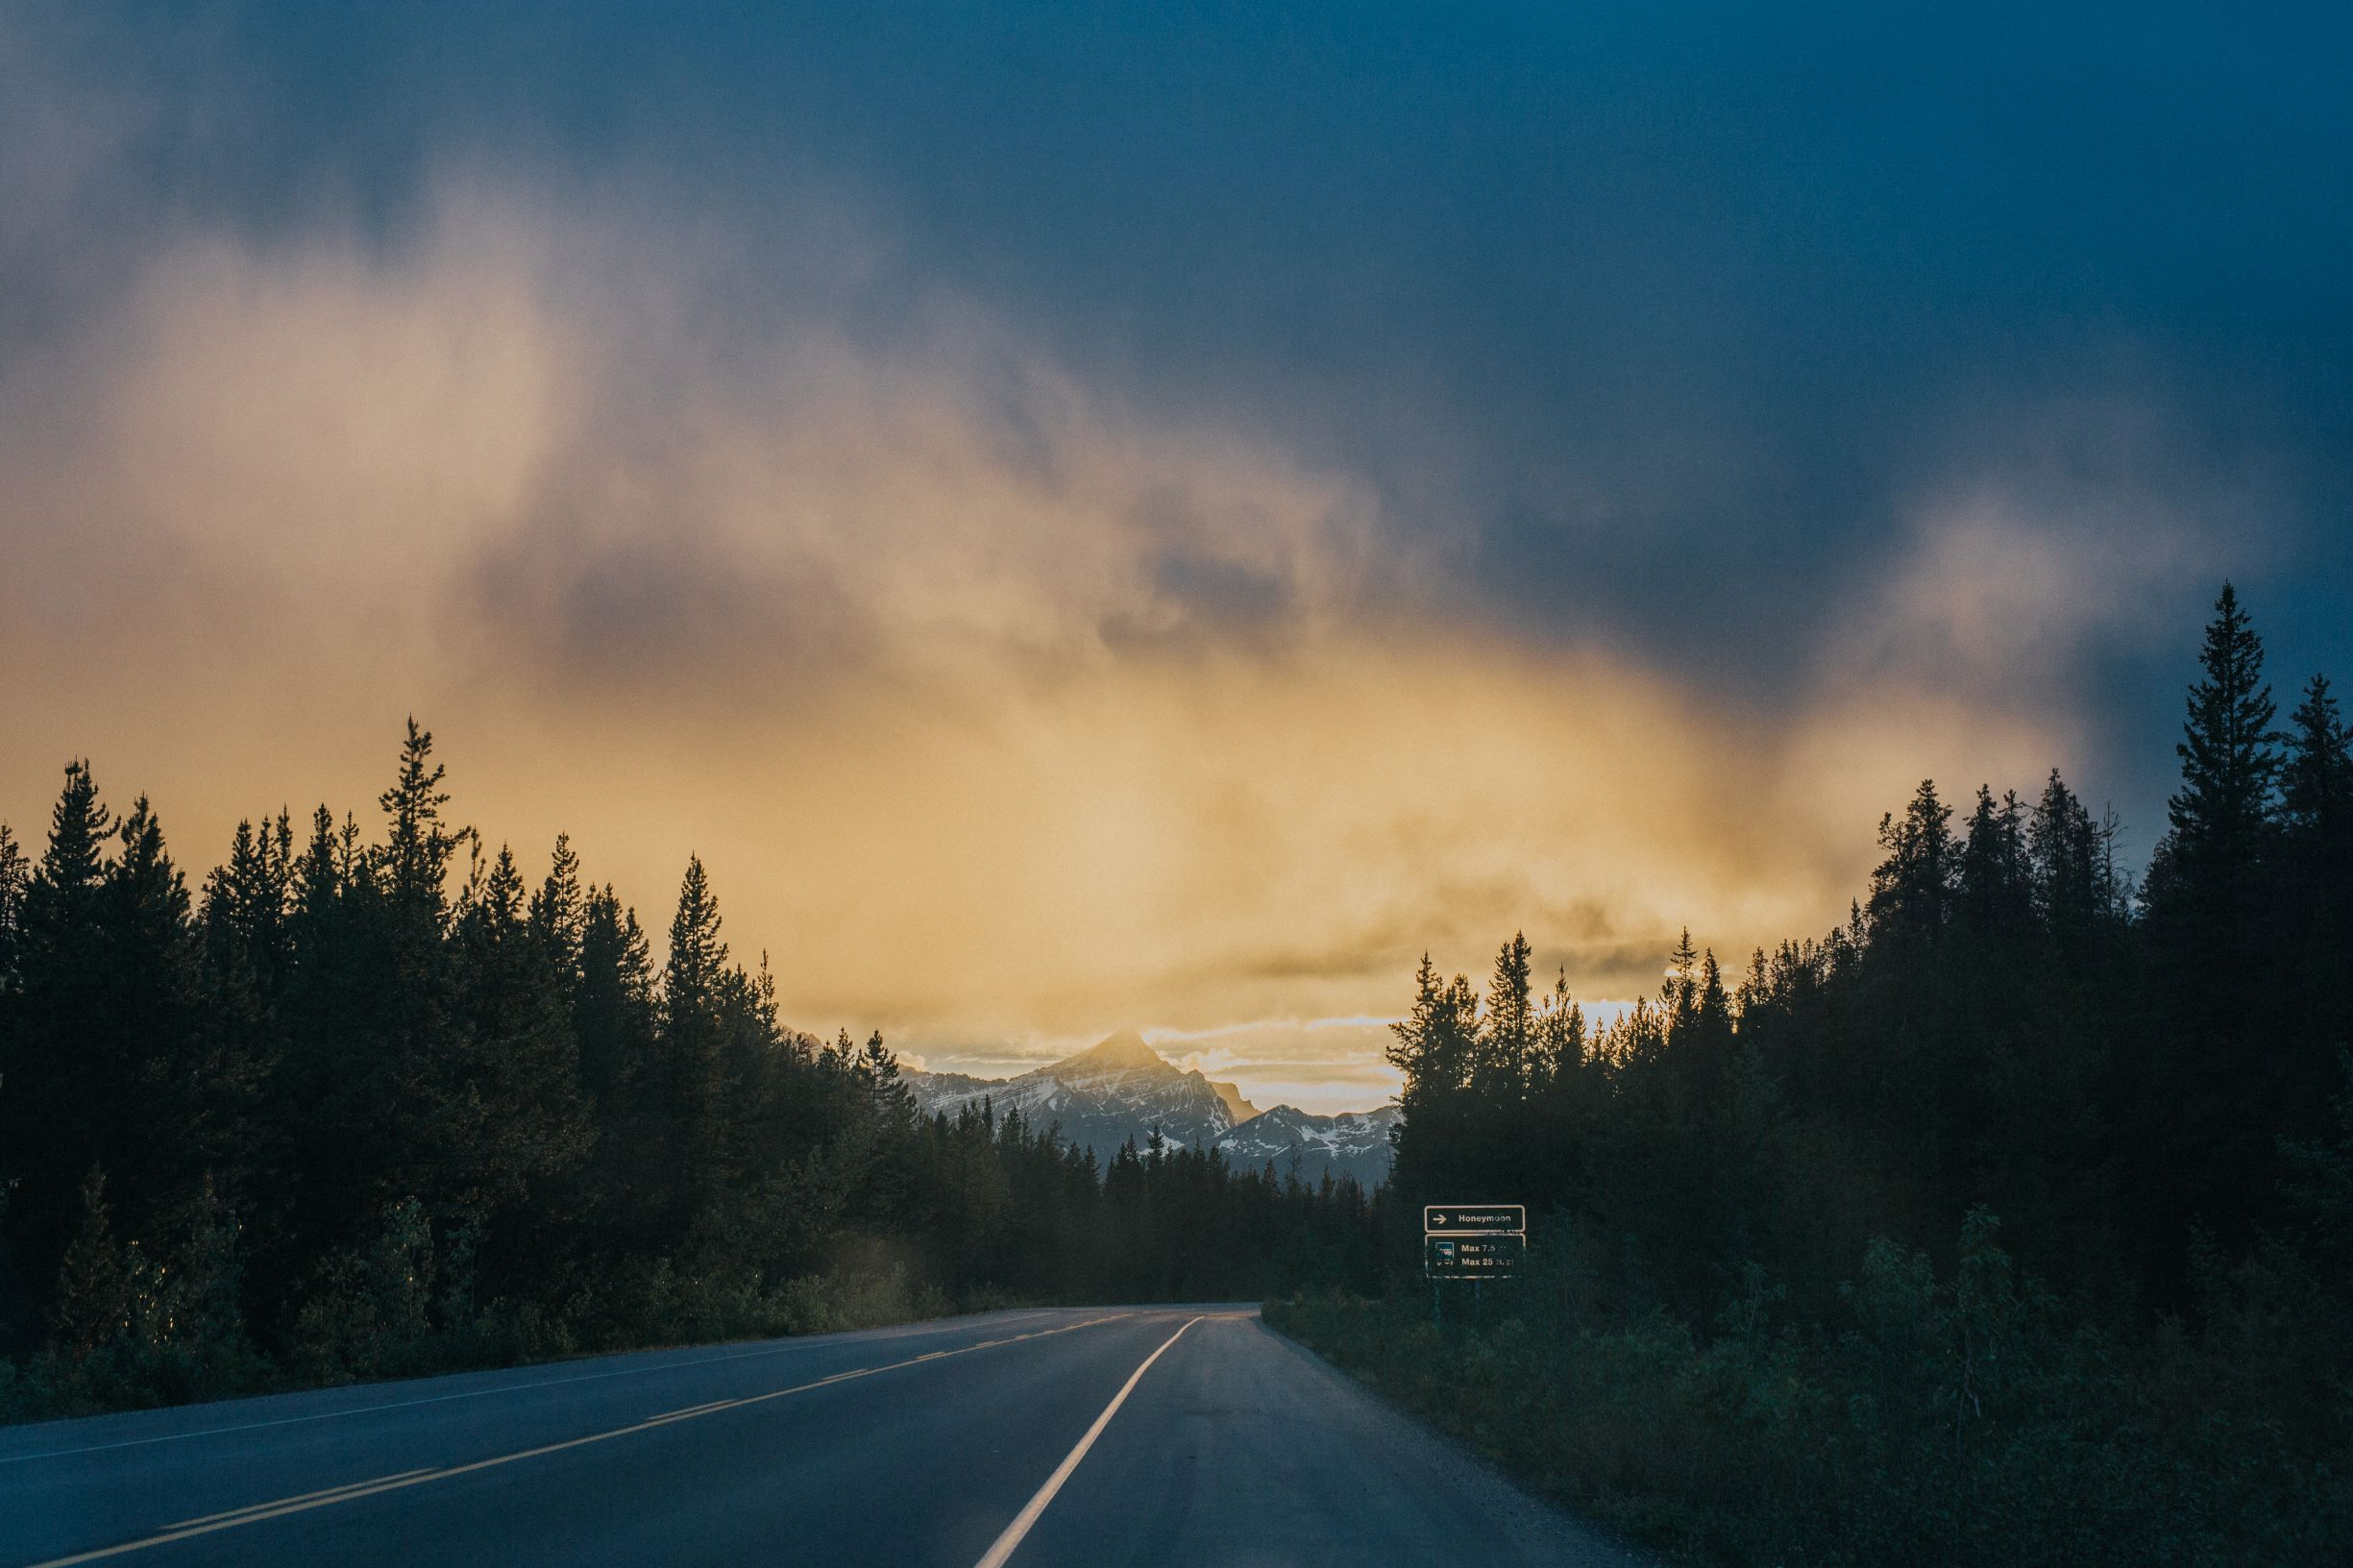 LeClair Media Commercial Photography drive from Banff to Jasper